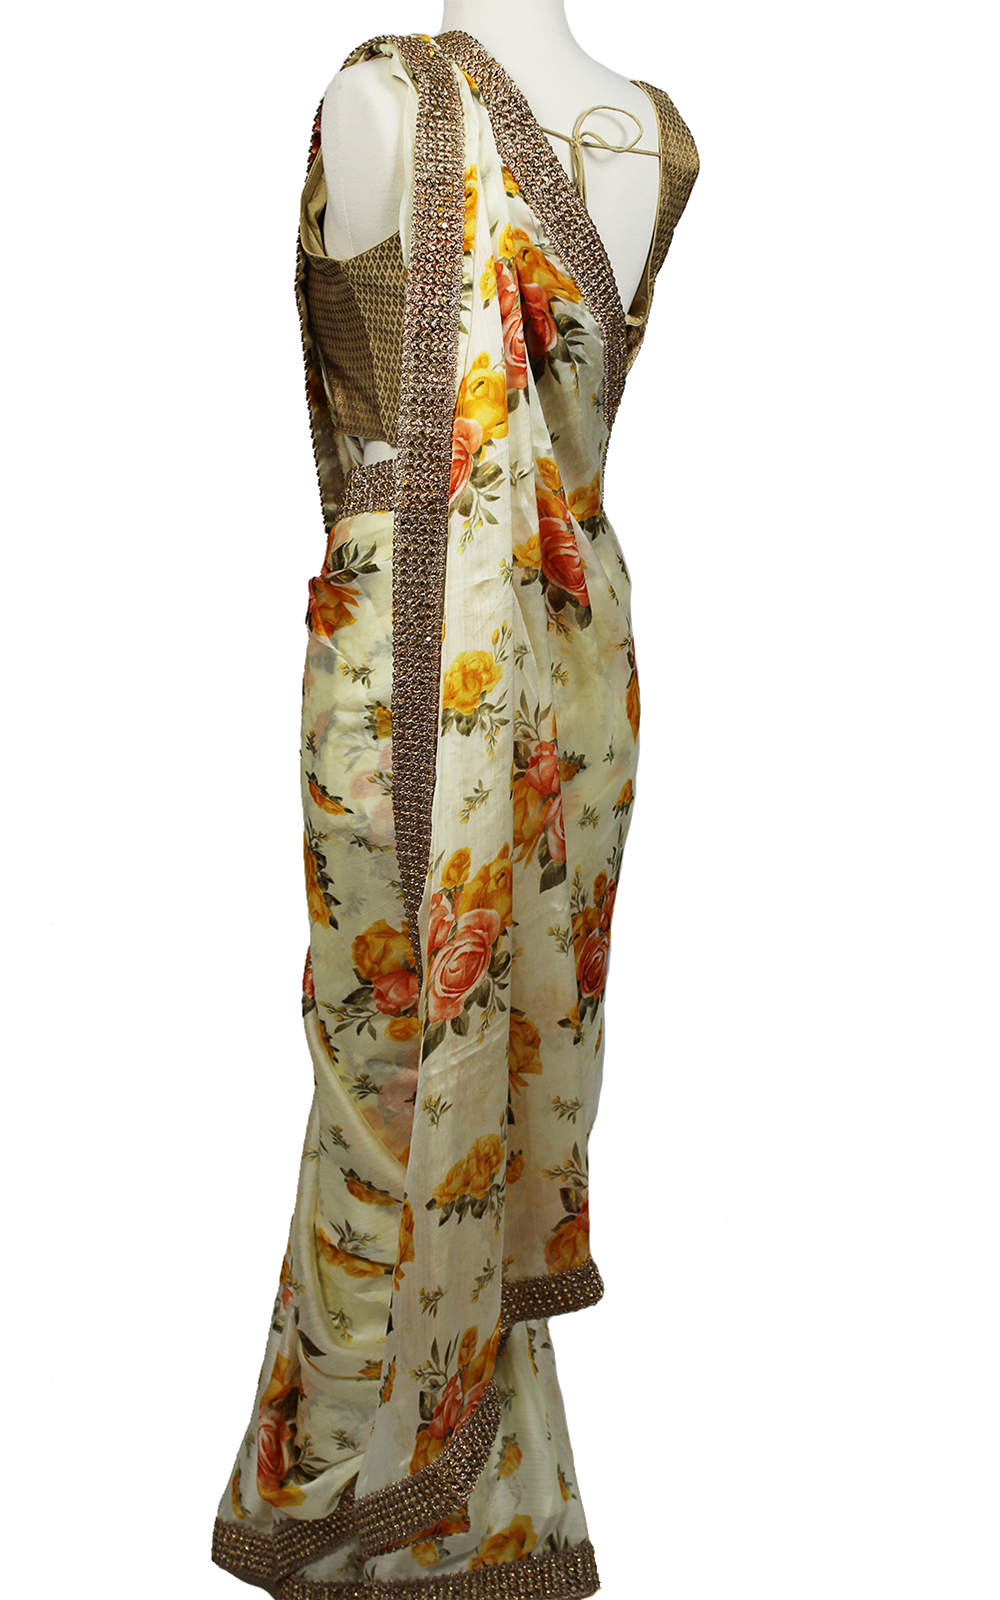 Floral Printed Saree with Gold Blouse